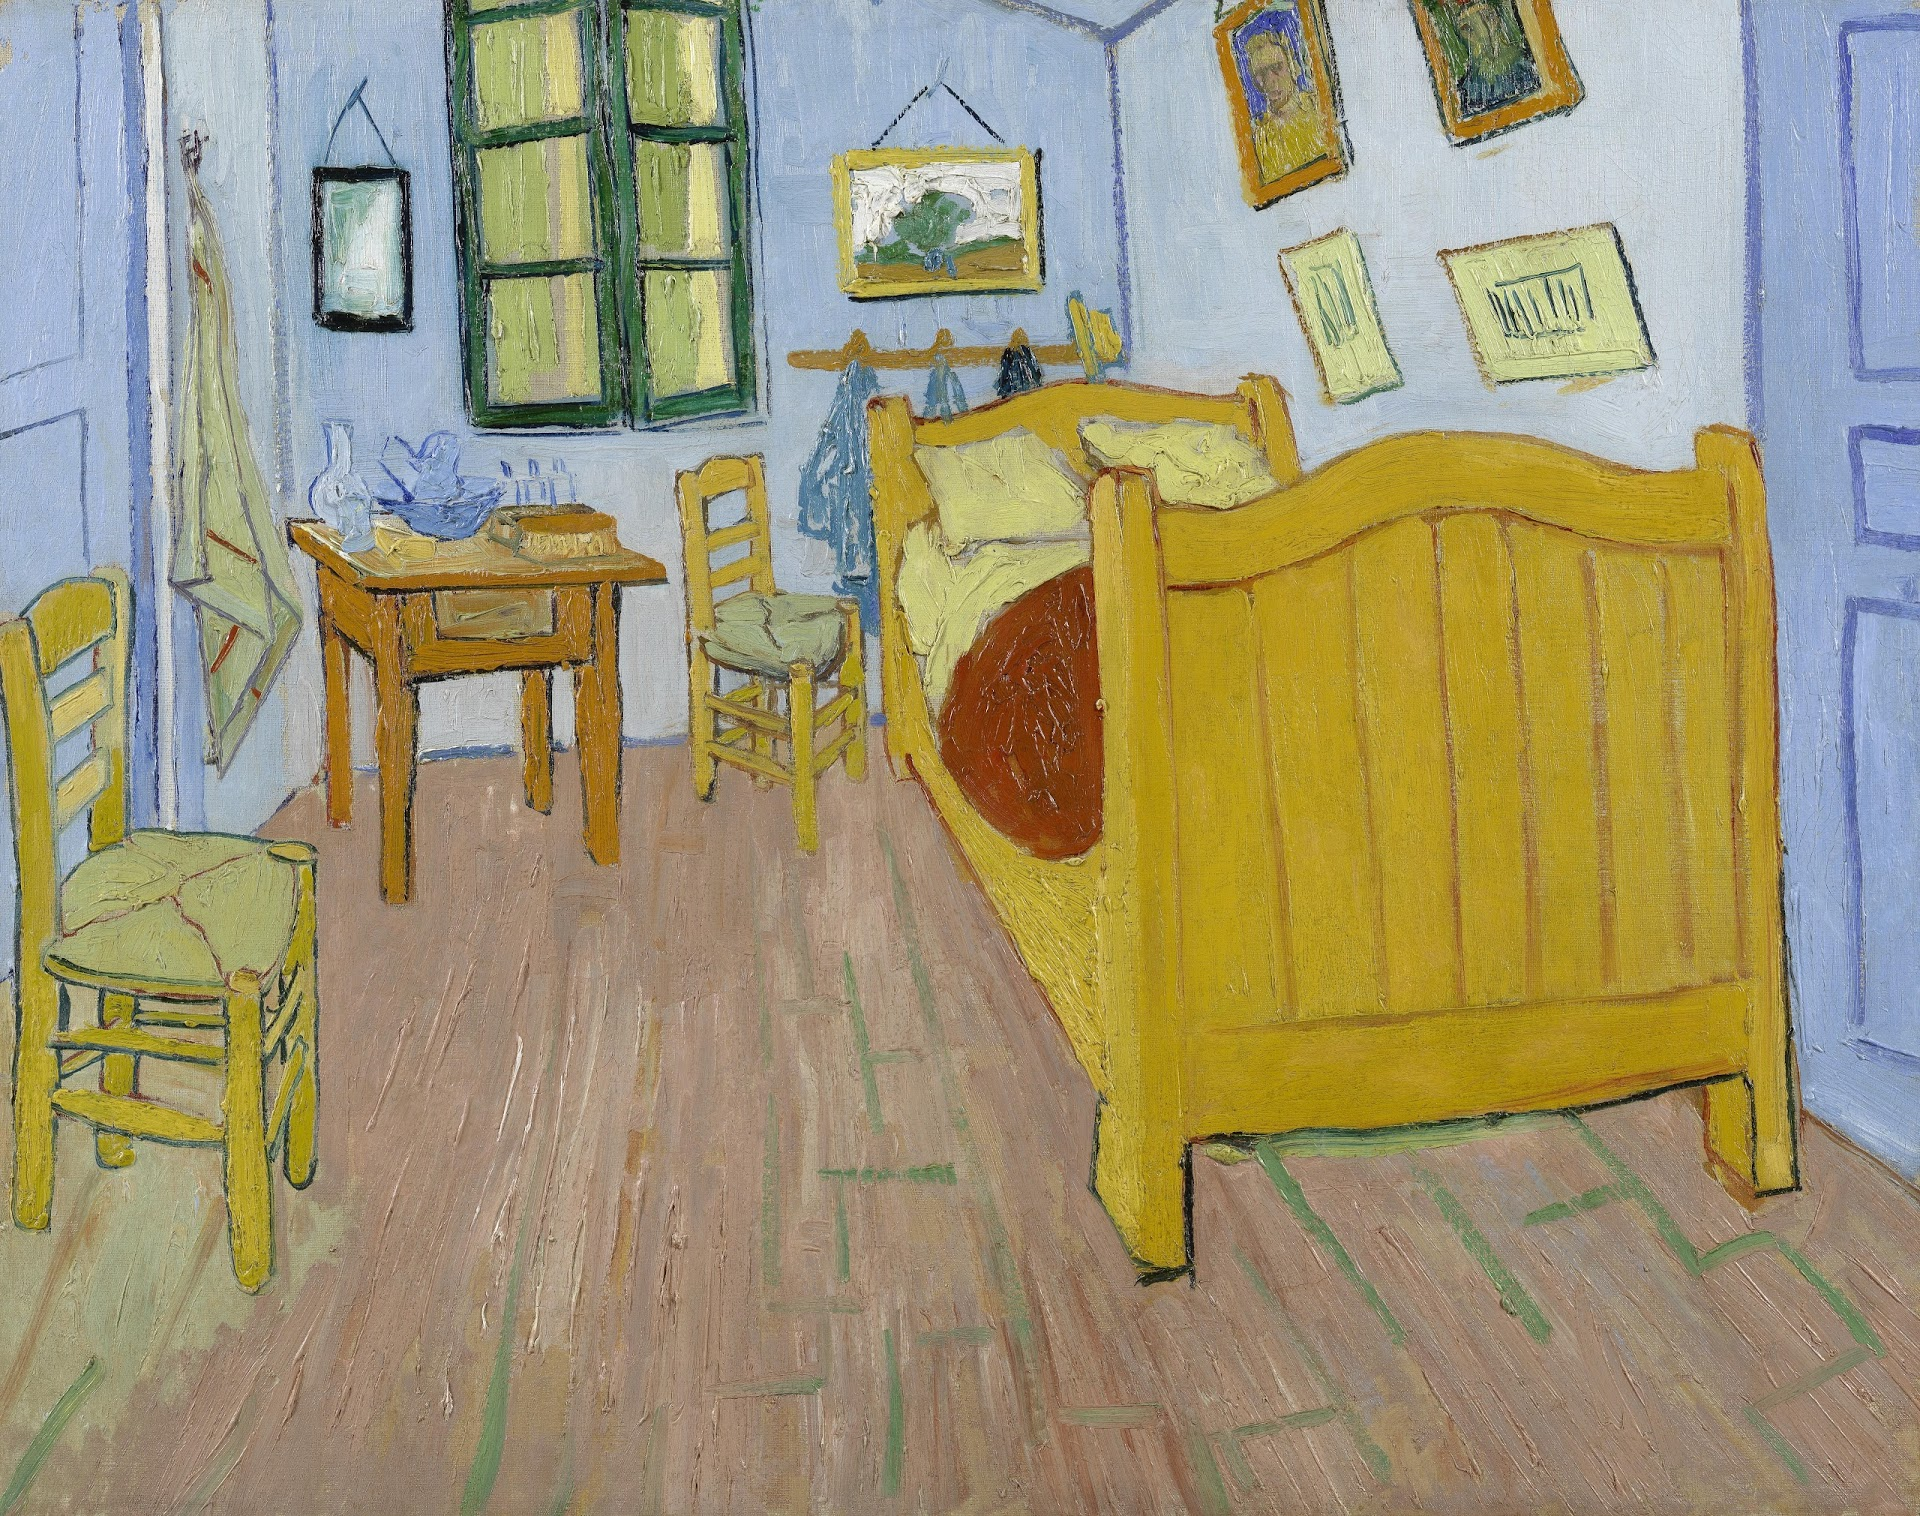 Nearly 1,000 Paintings & Drawings by Vincent van Gogh Now Digitized and Put Online: View/Download the Collection